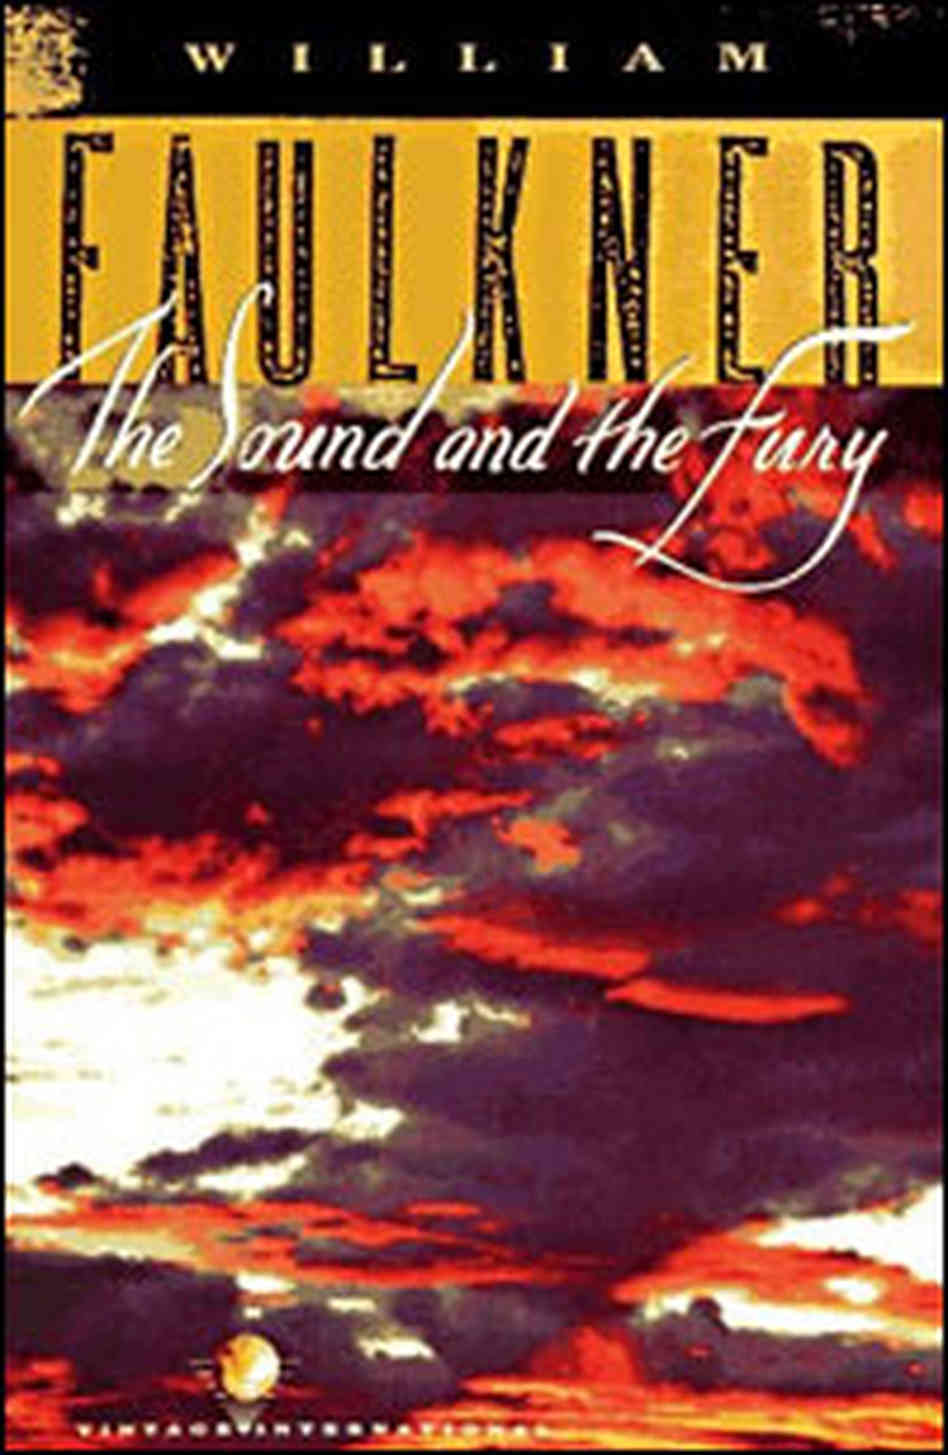 the sound and the fury book review